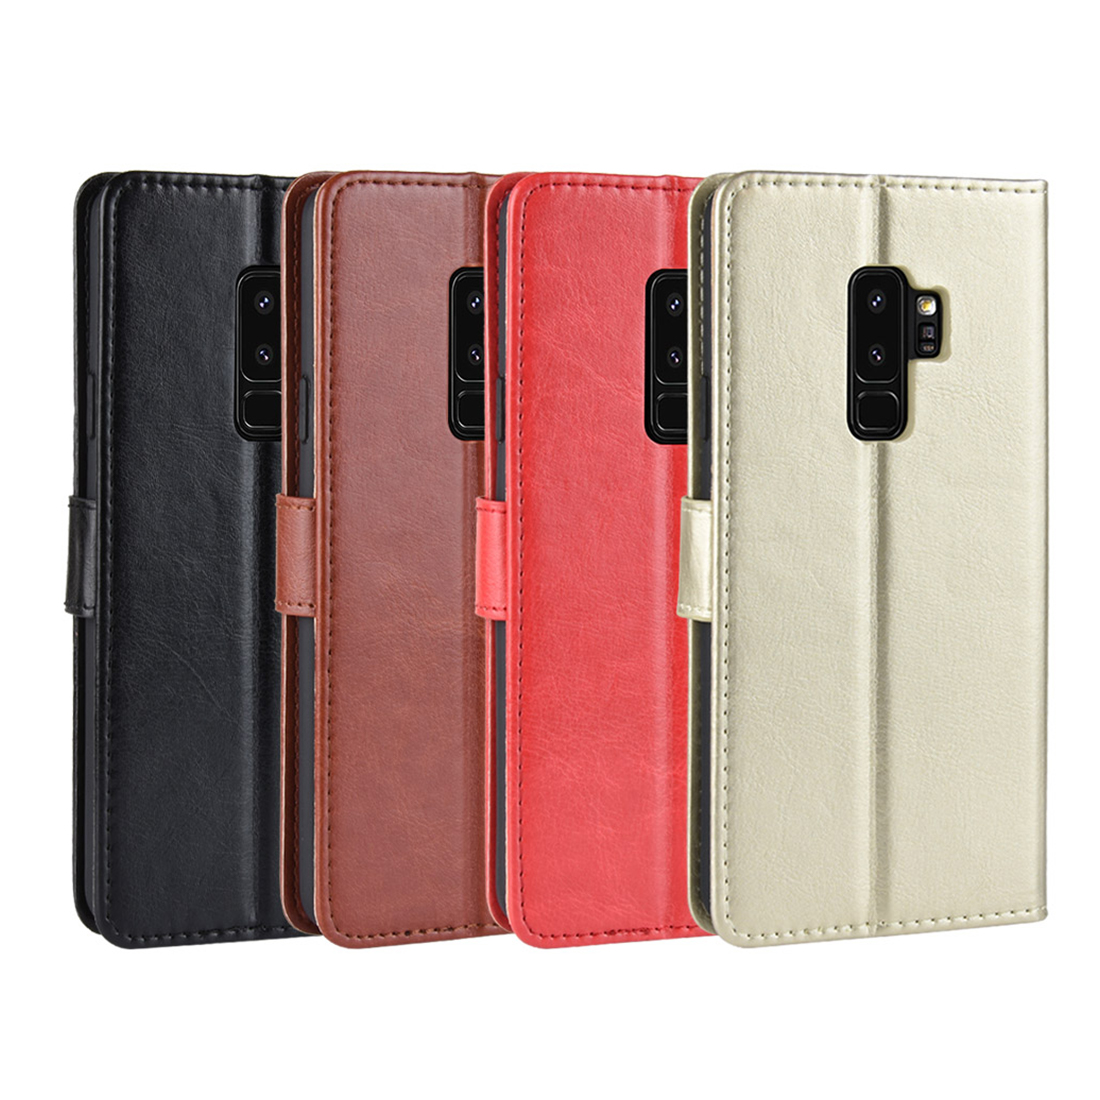 huge discount e098e a69ca Mobile Phone Case Flip Phone Card Protection Leather Case for Samsung  Galaxy S9/ S9 Plus